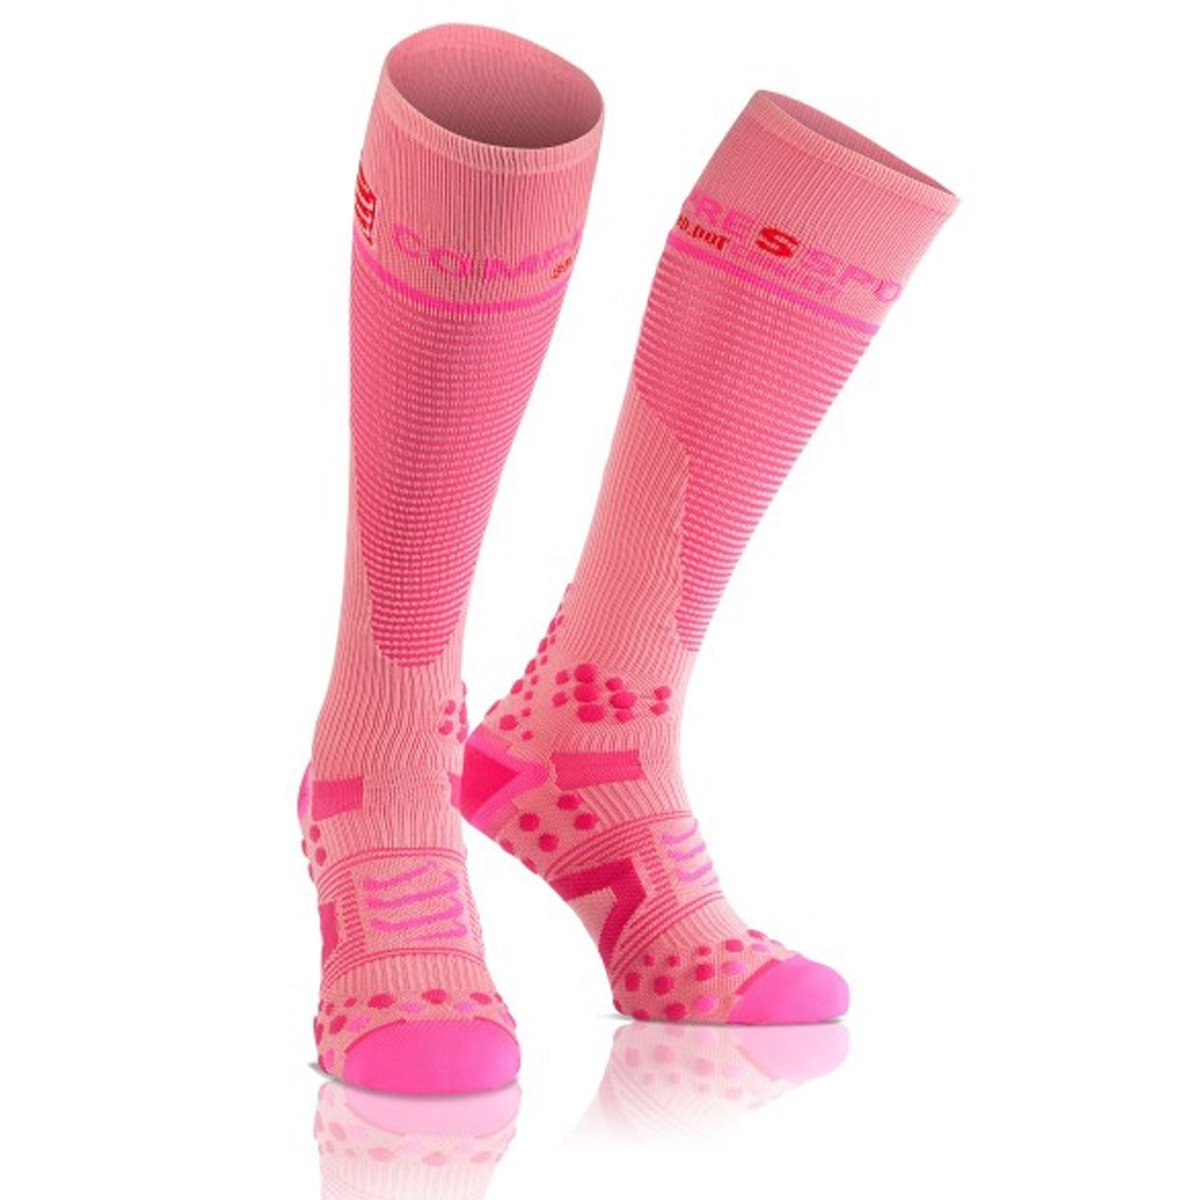 Compressport Kompressions-socken Full Socks V2.1 Calcetines, Unisex, Rosa, 1M